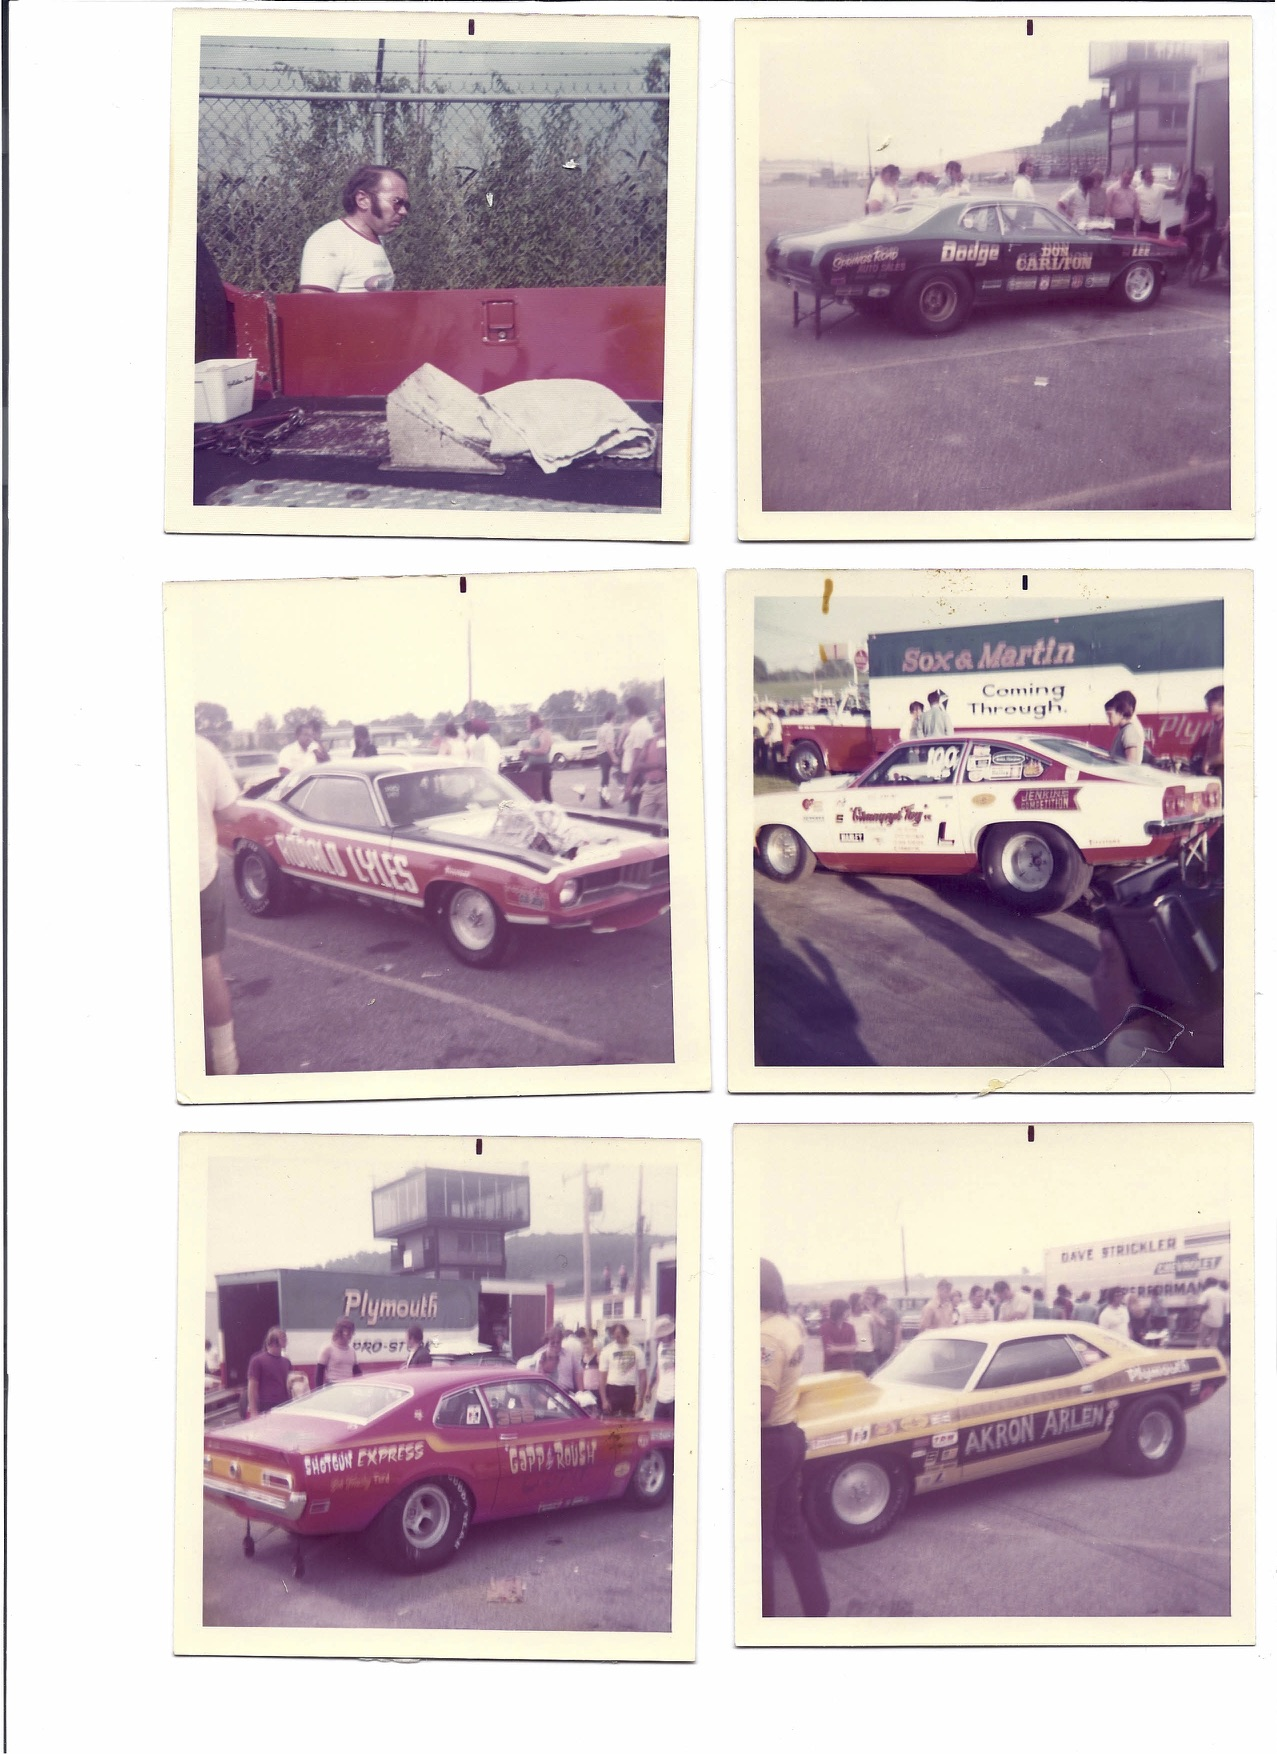 Historic Photos: Check Out These Great Images From The 1972 Super Stock Nationals At York, PA